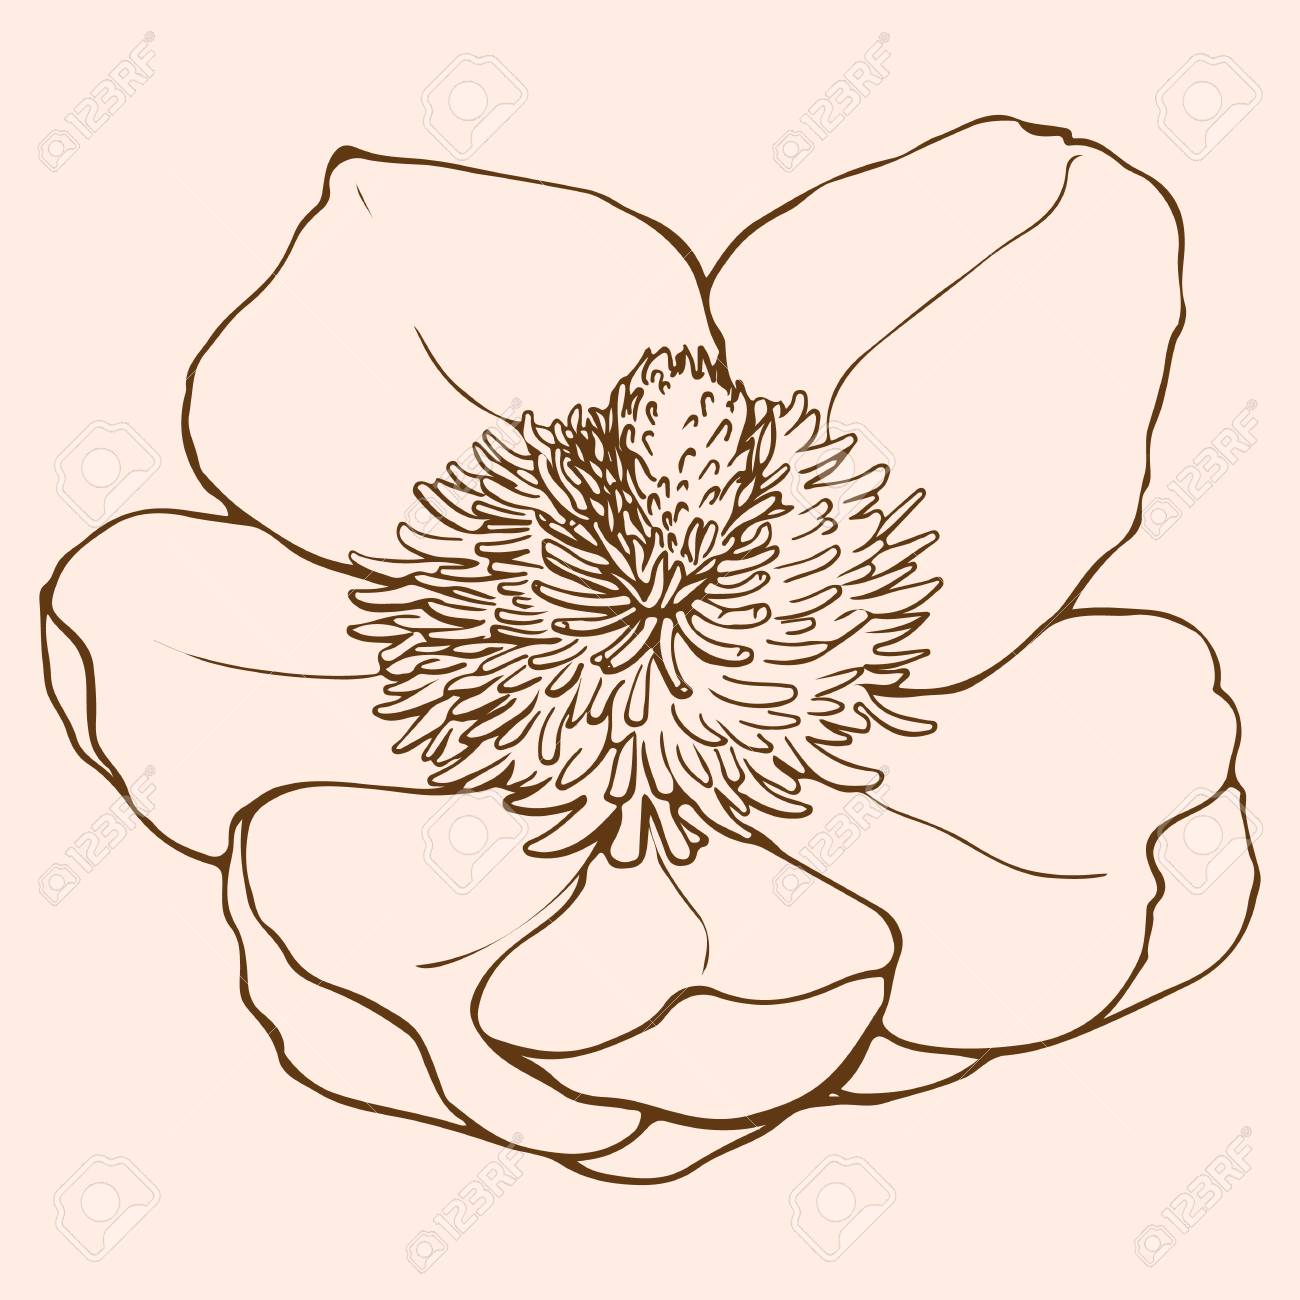 Magnolia Flower Drawing Drawn In Line Art Style Tropical Exotic